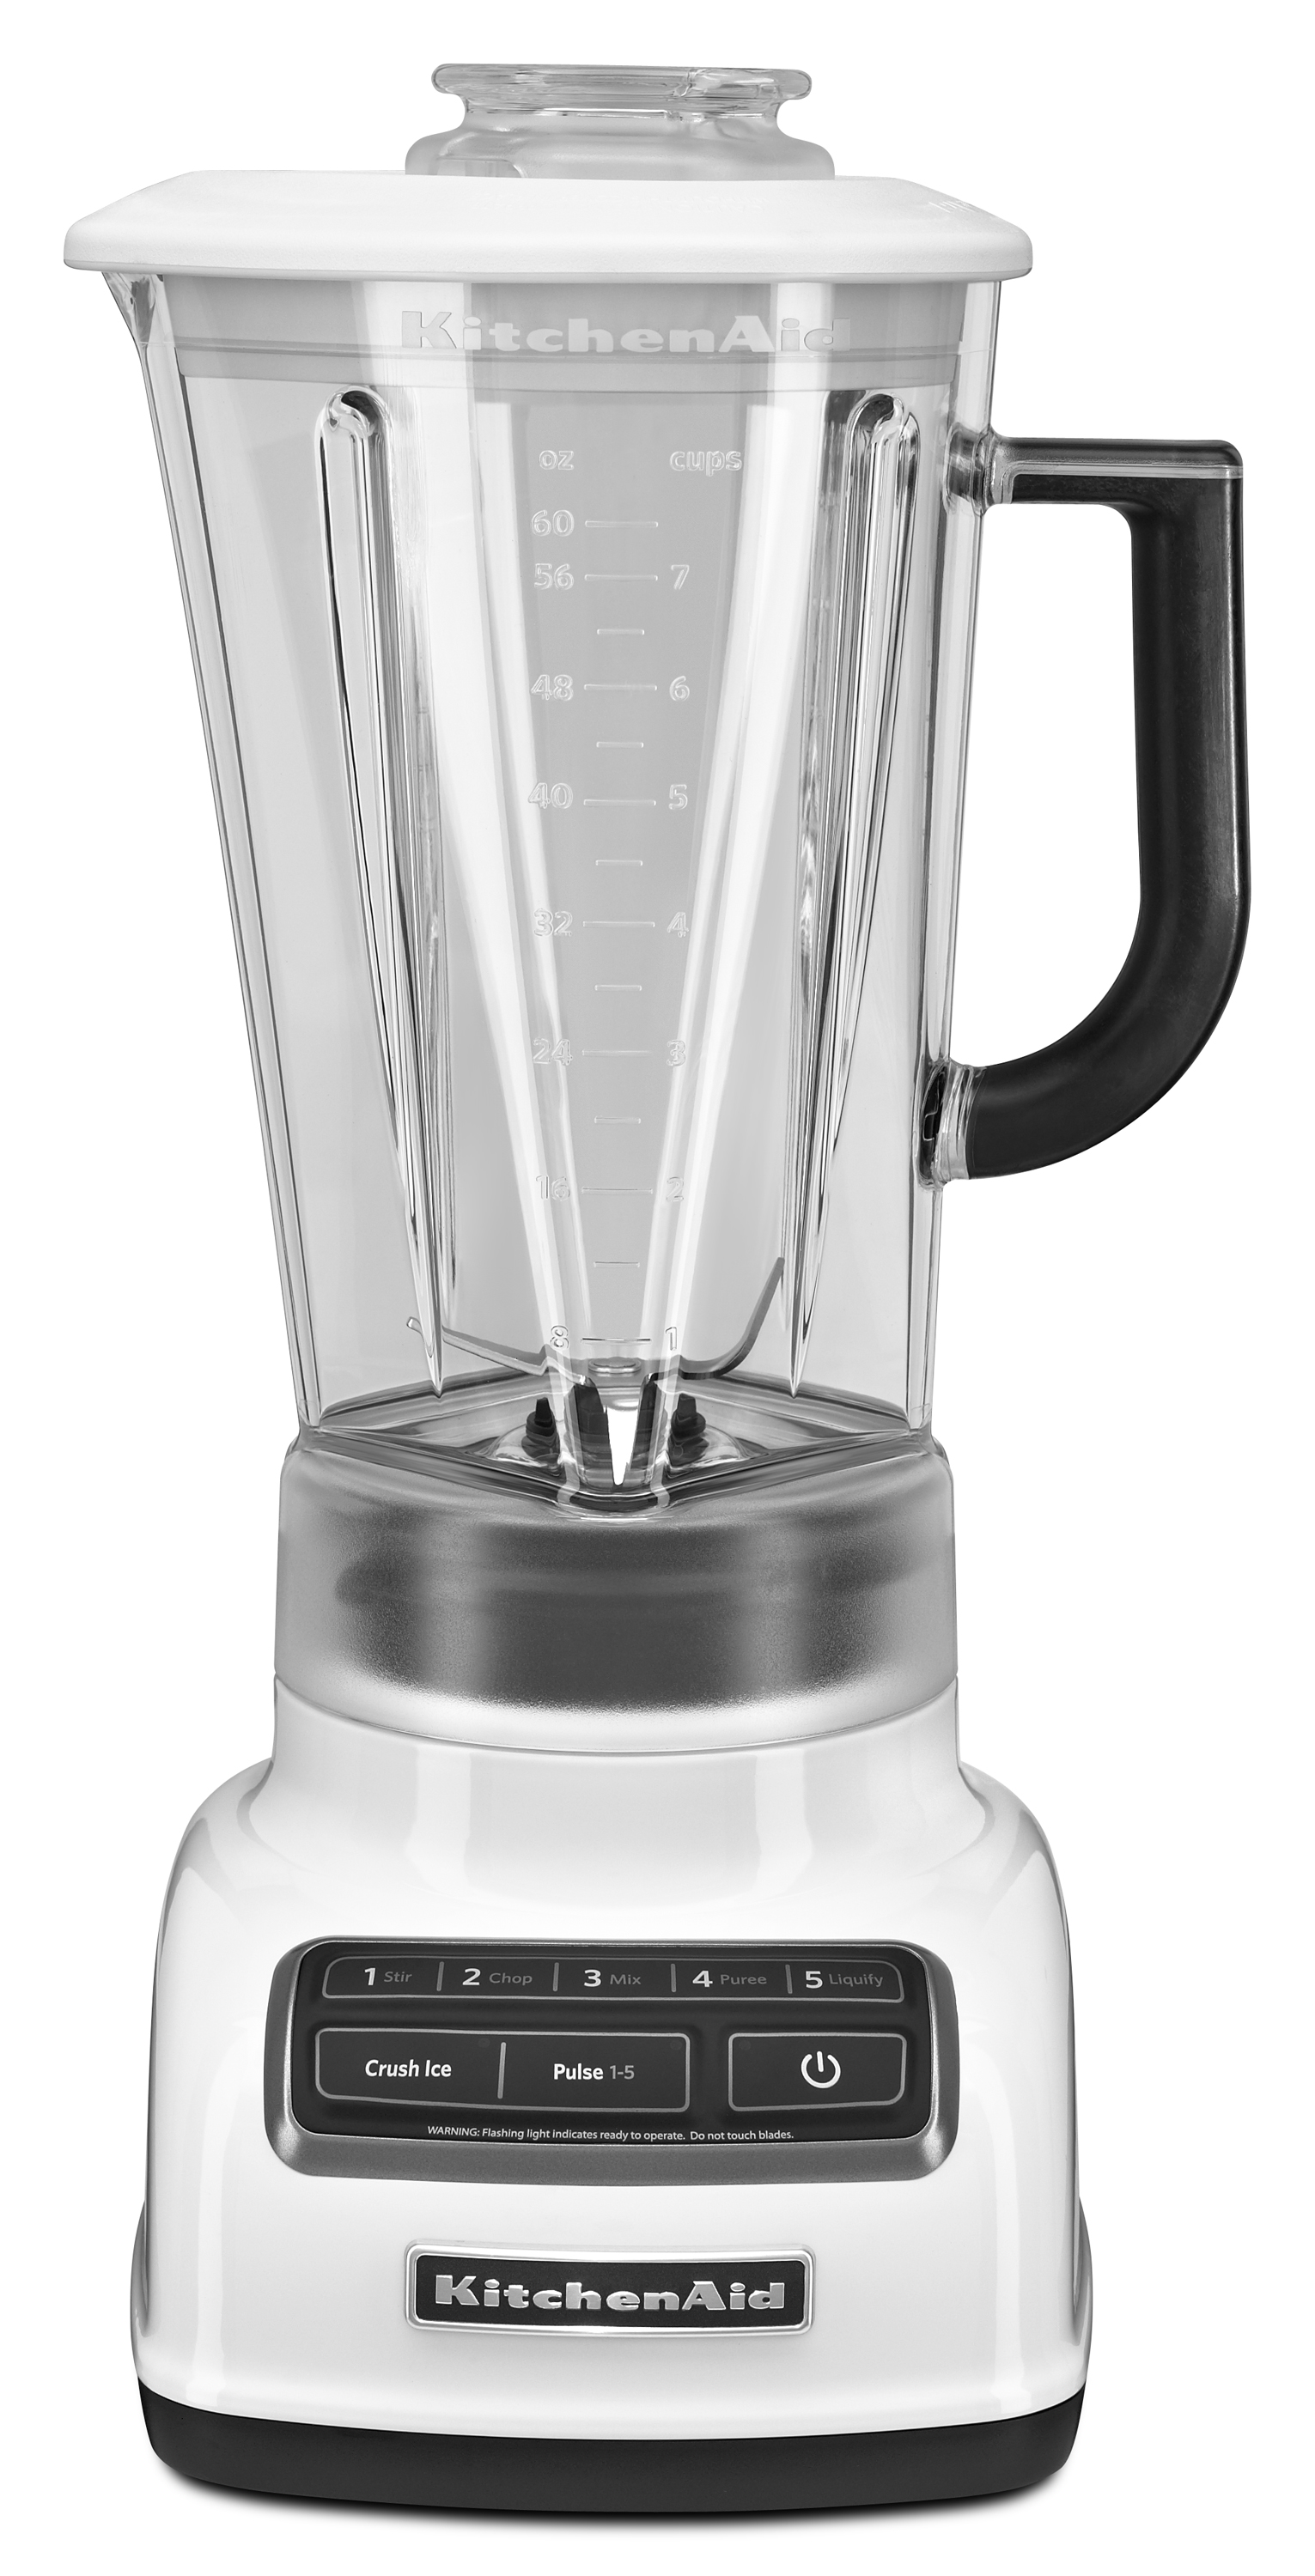 KitchenAid® 5-Speed Diamond Blender, White (KSB1575WH) - Walmart.com